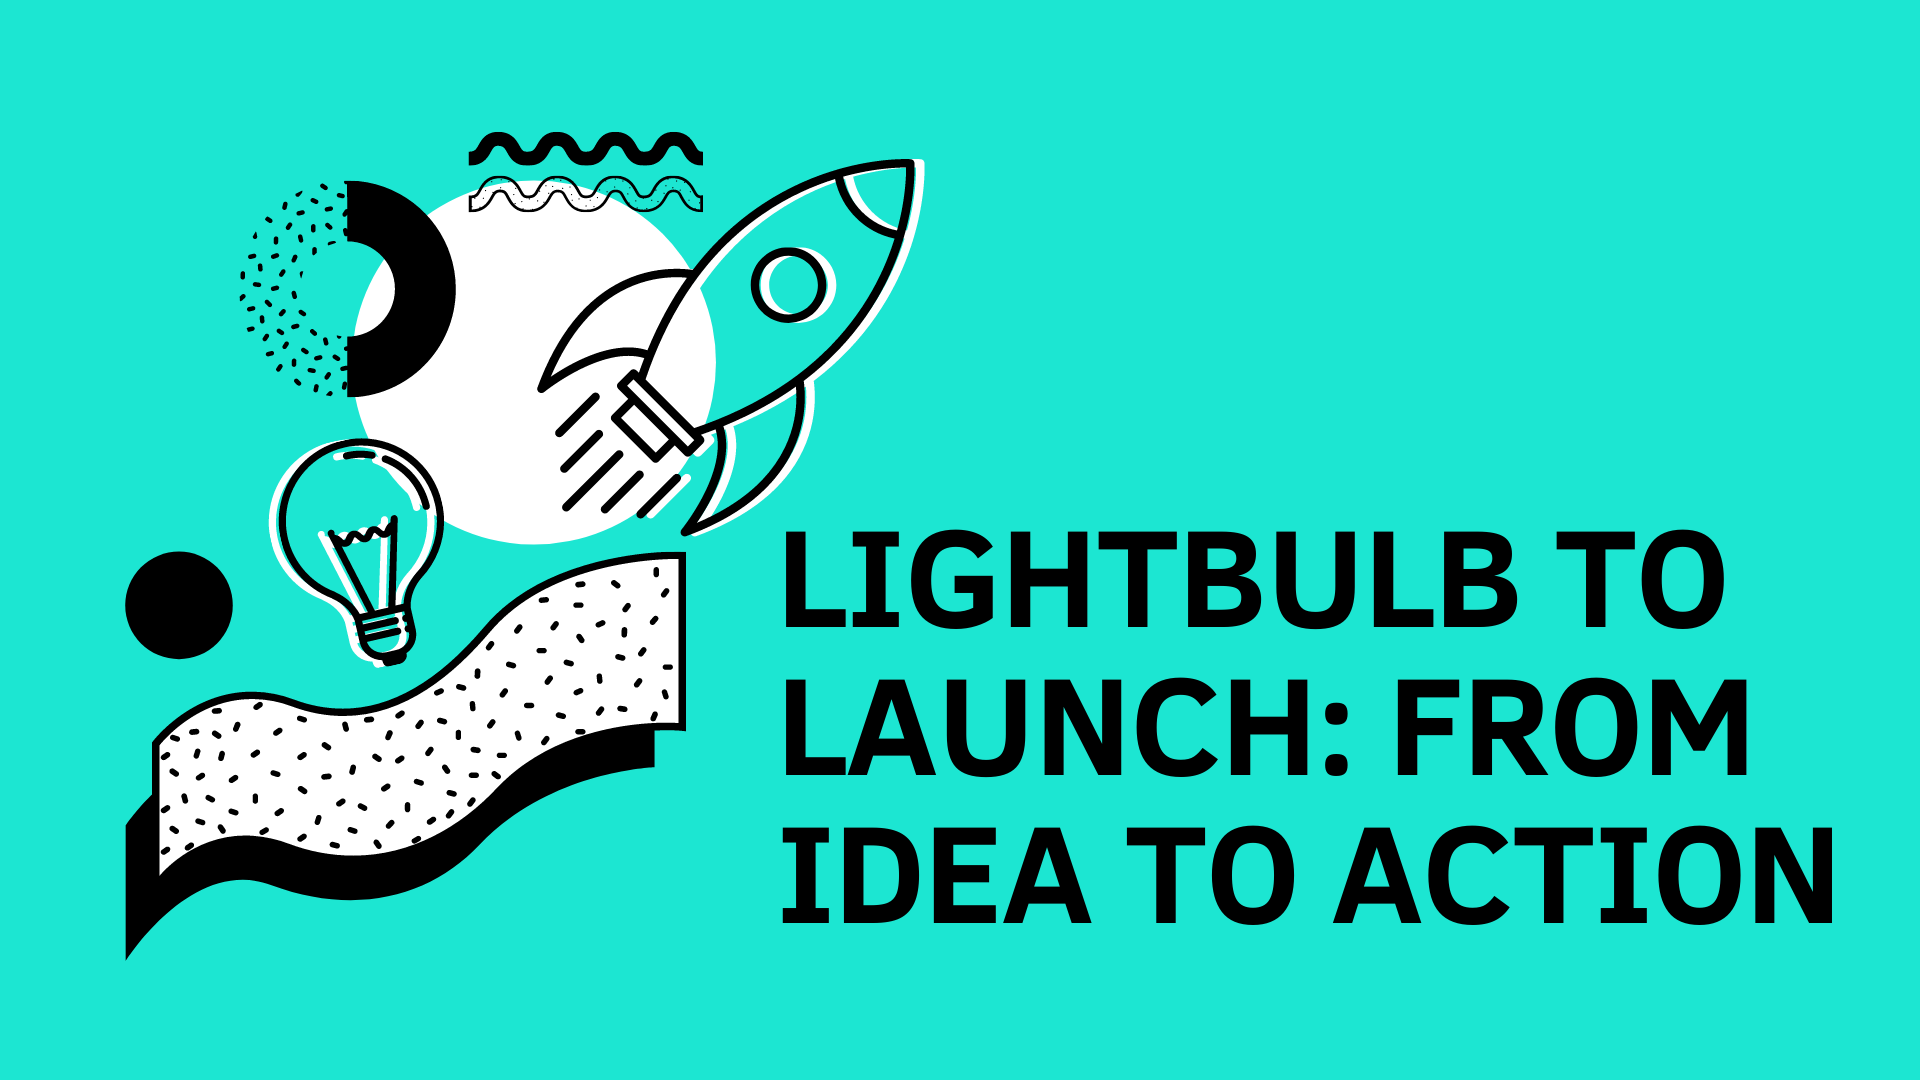 Lightbulb to Launch: From Idea to Action